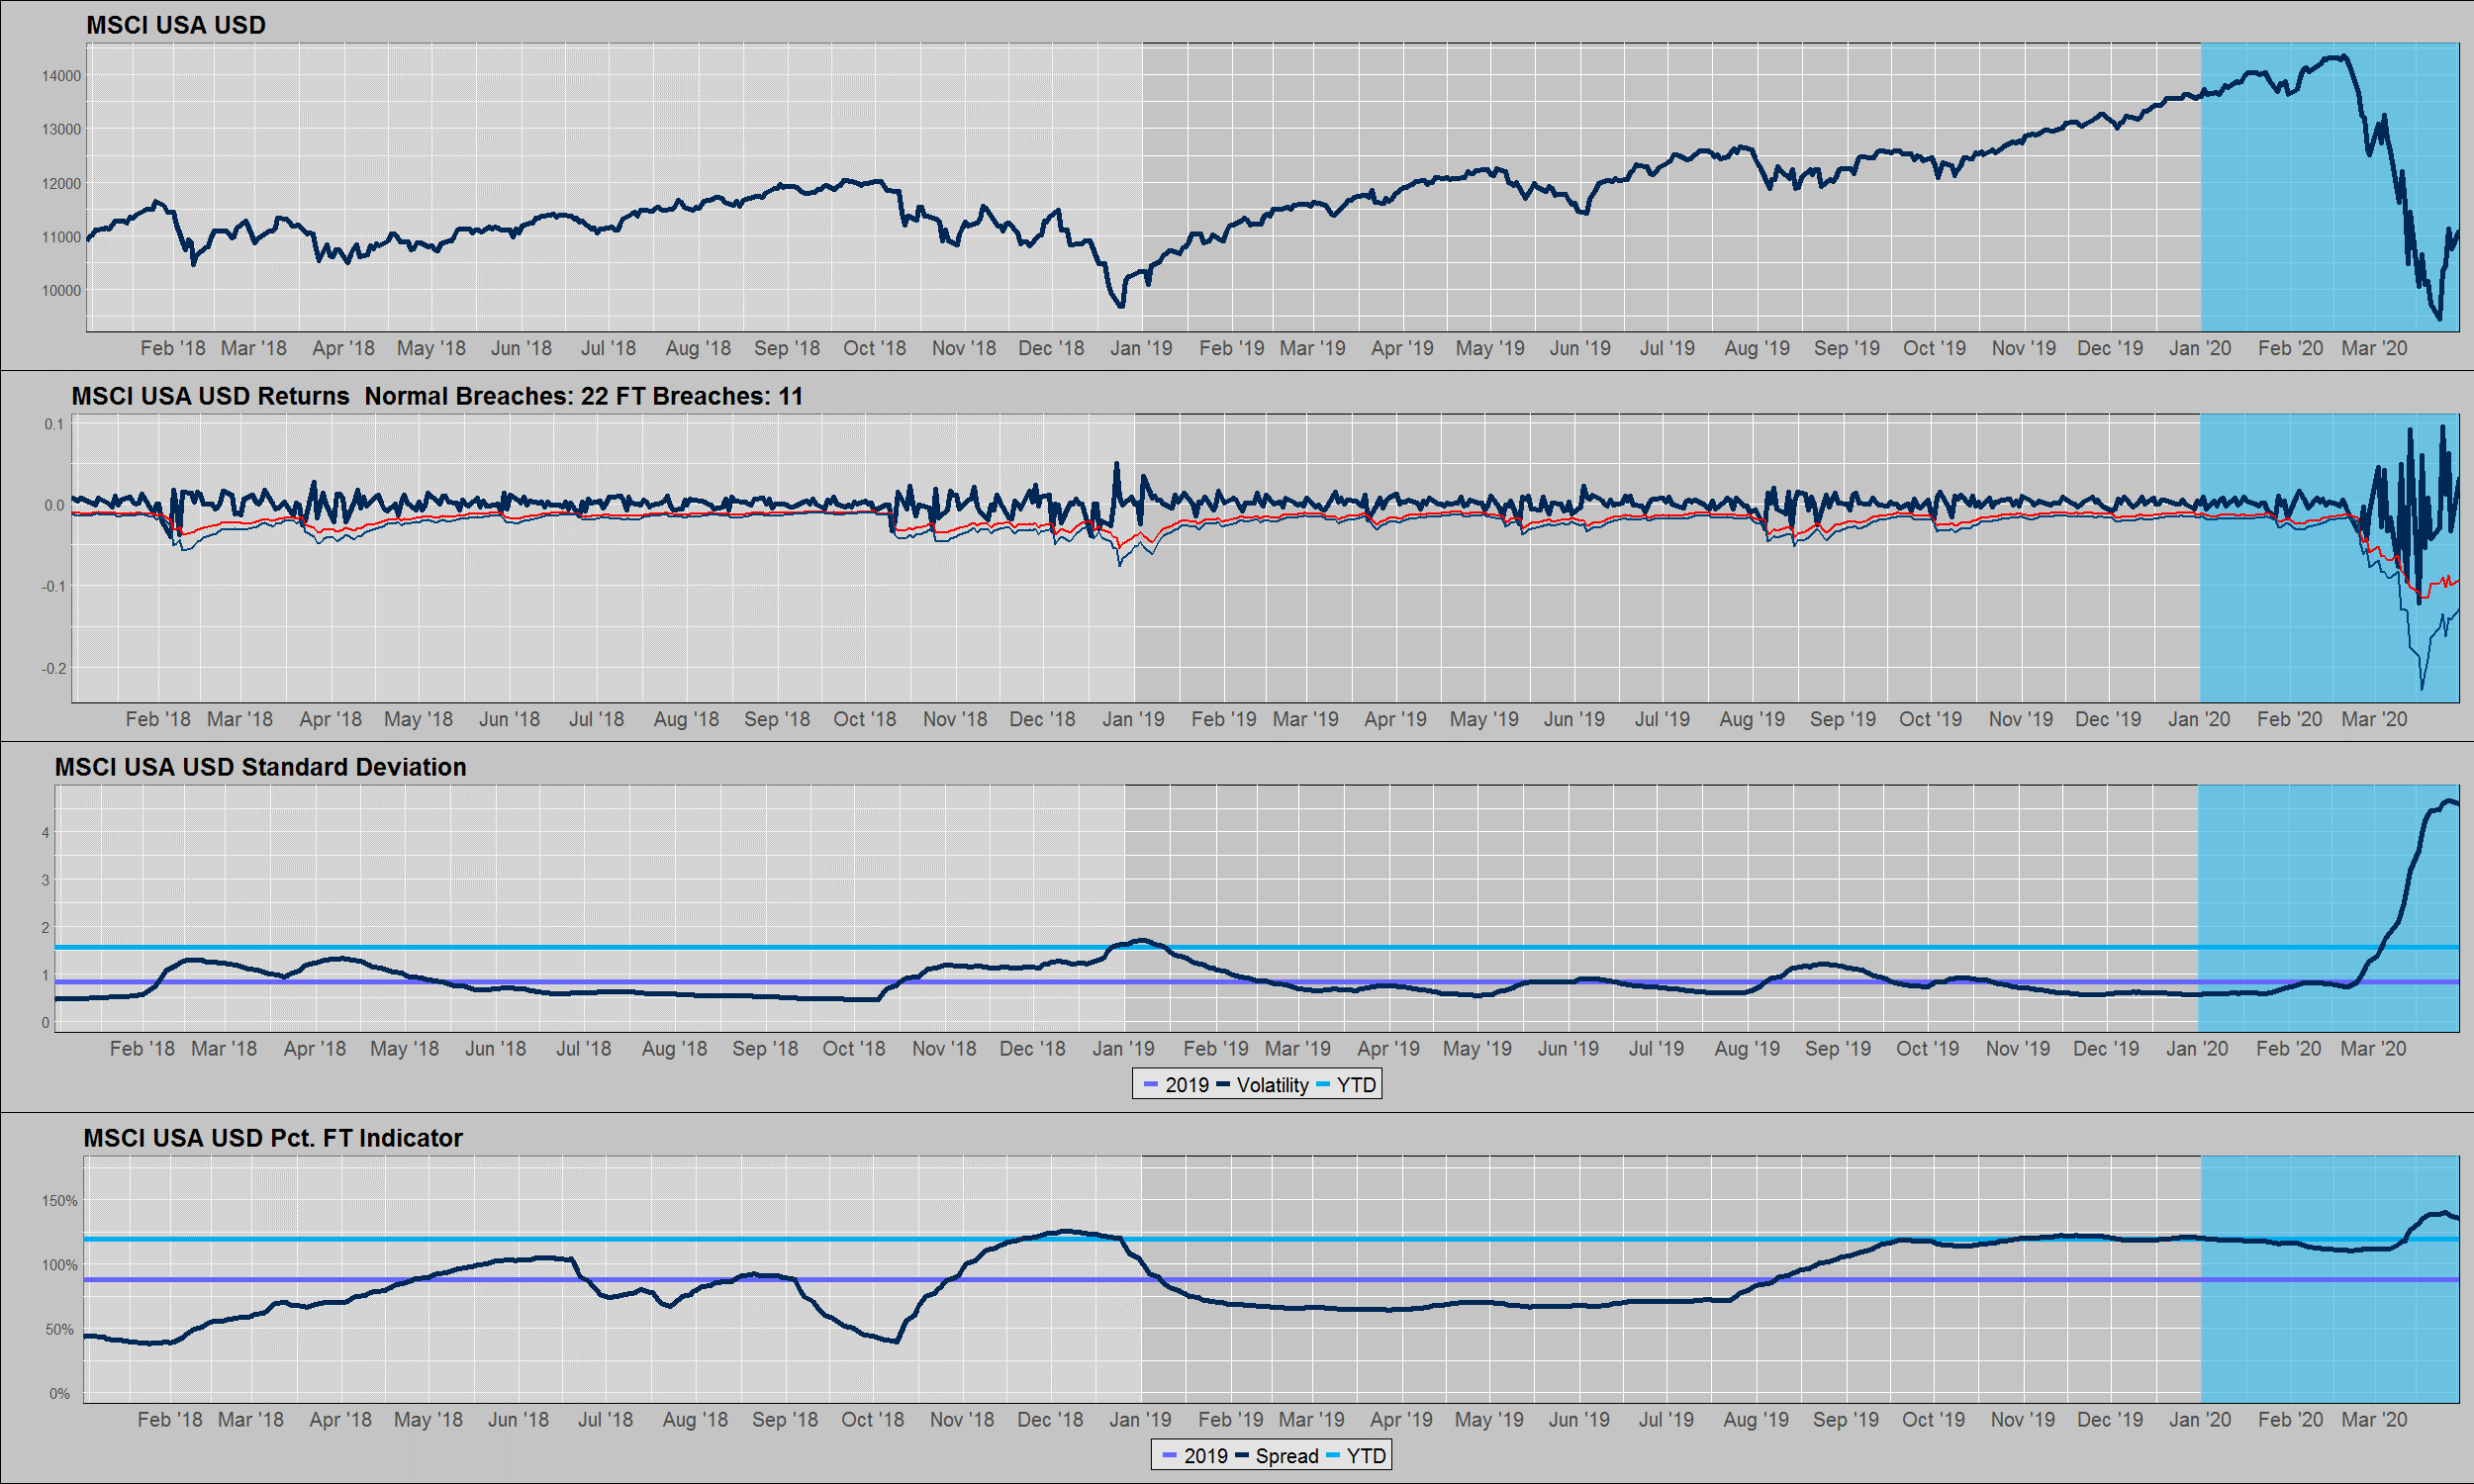 Figure 1: MSCI USA Performance, Volatility, and Fat-Tail Indicator